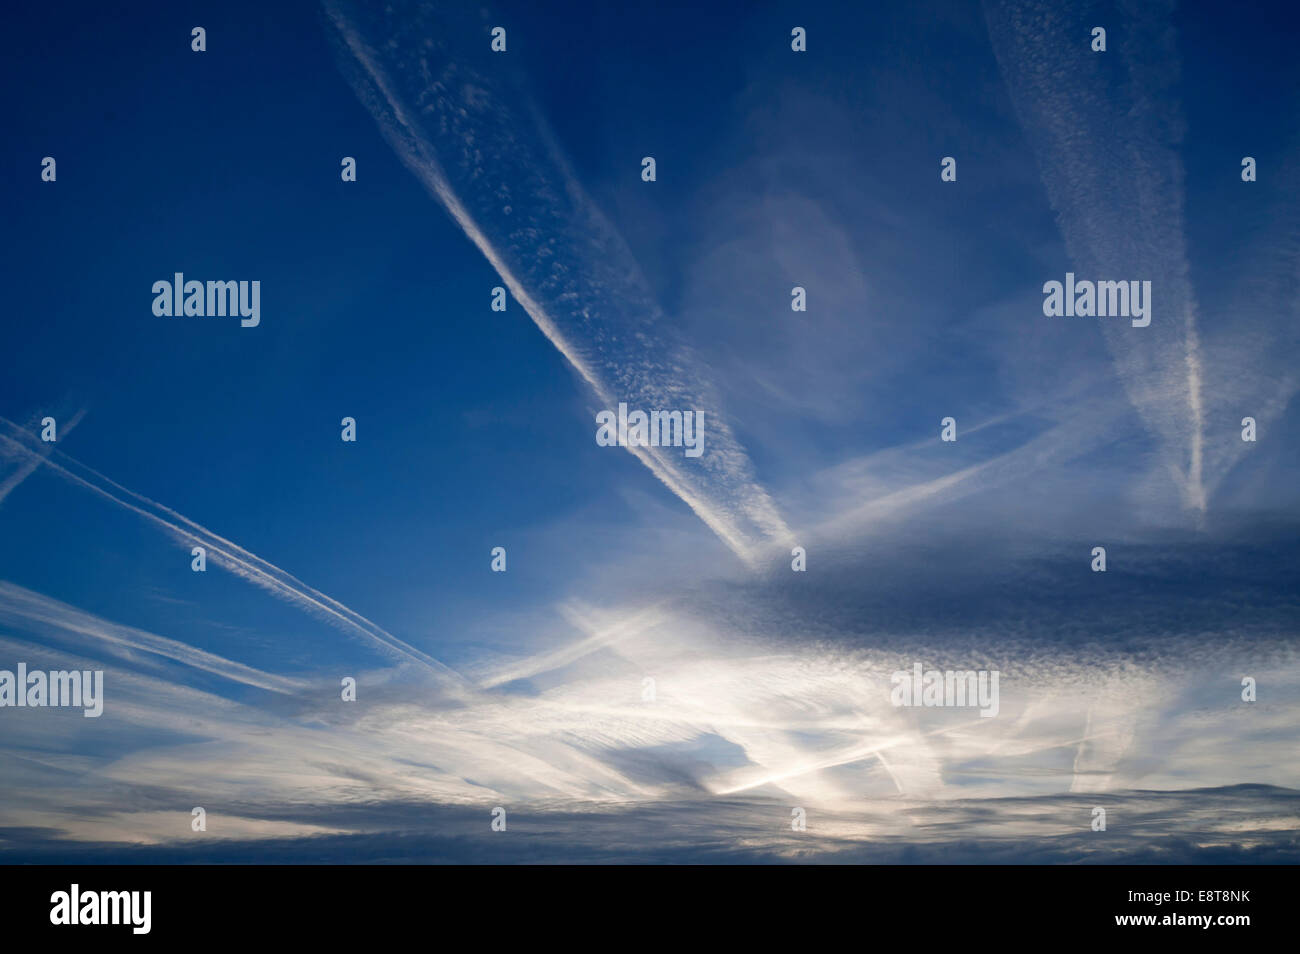 Small fluffy clouds, Cirrocumulus clouds, and medium-high stratus clouds, Altostratus, with contrails - Stock Image